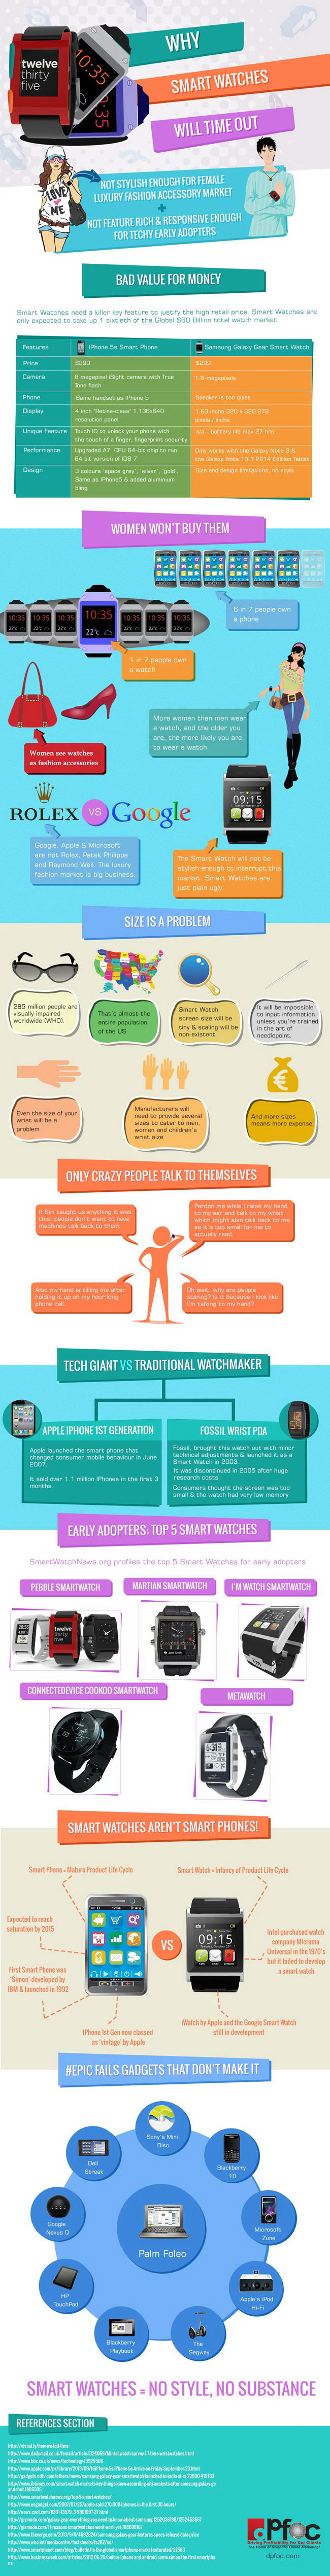 Smart Watches Vs Smartphones Comparison Infographic